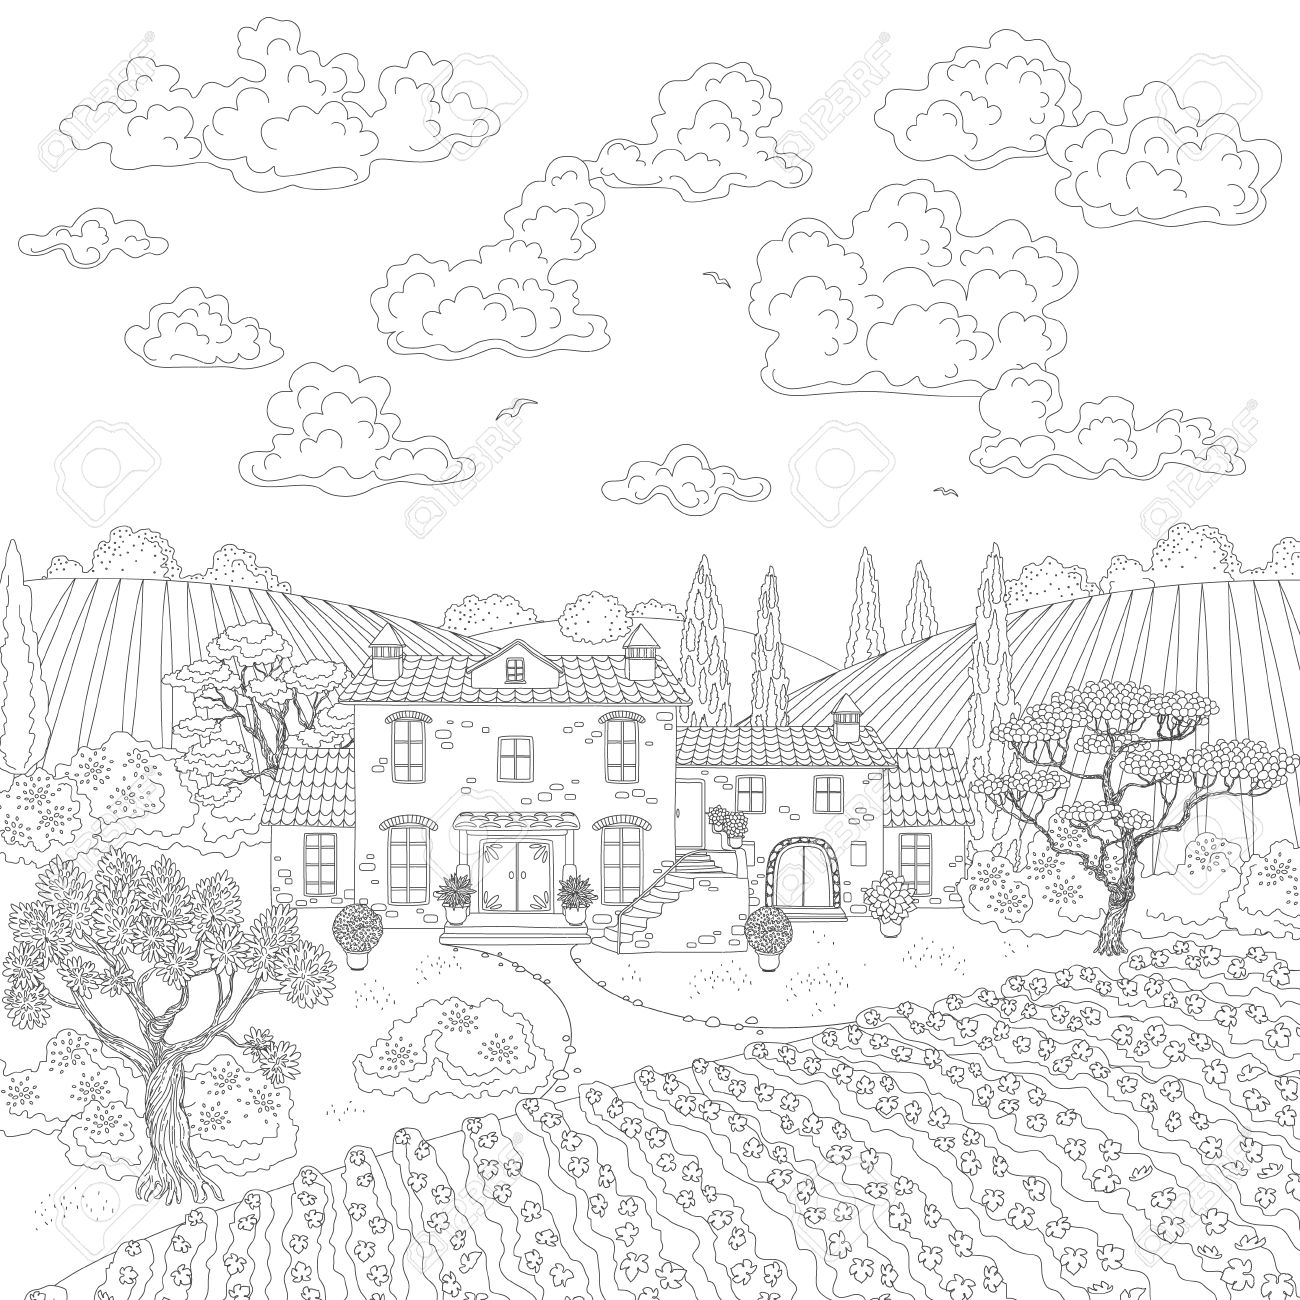 1300x1300 Contoured Summer Landscape With House, Vineyard, Trees And Clouds